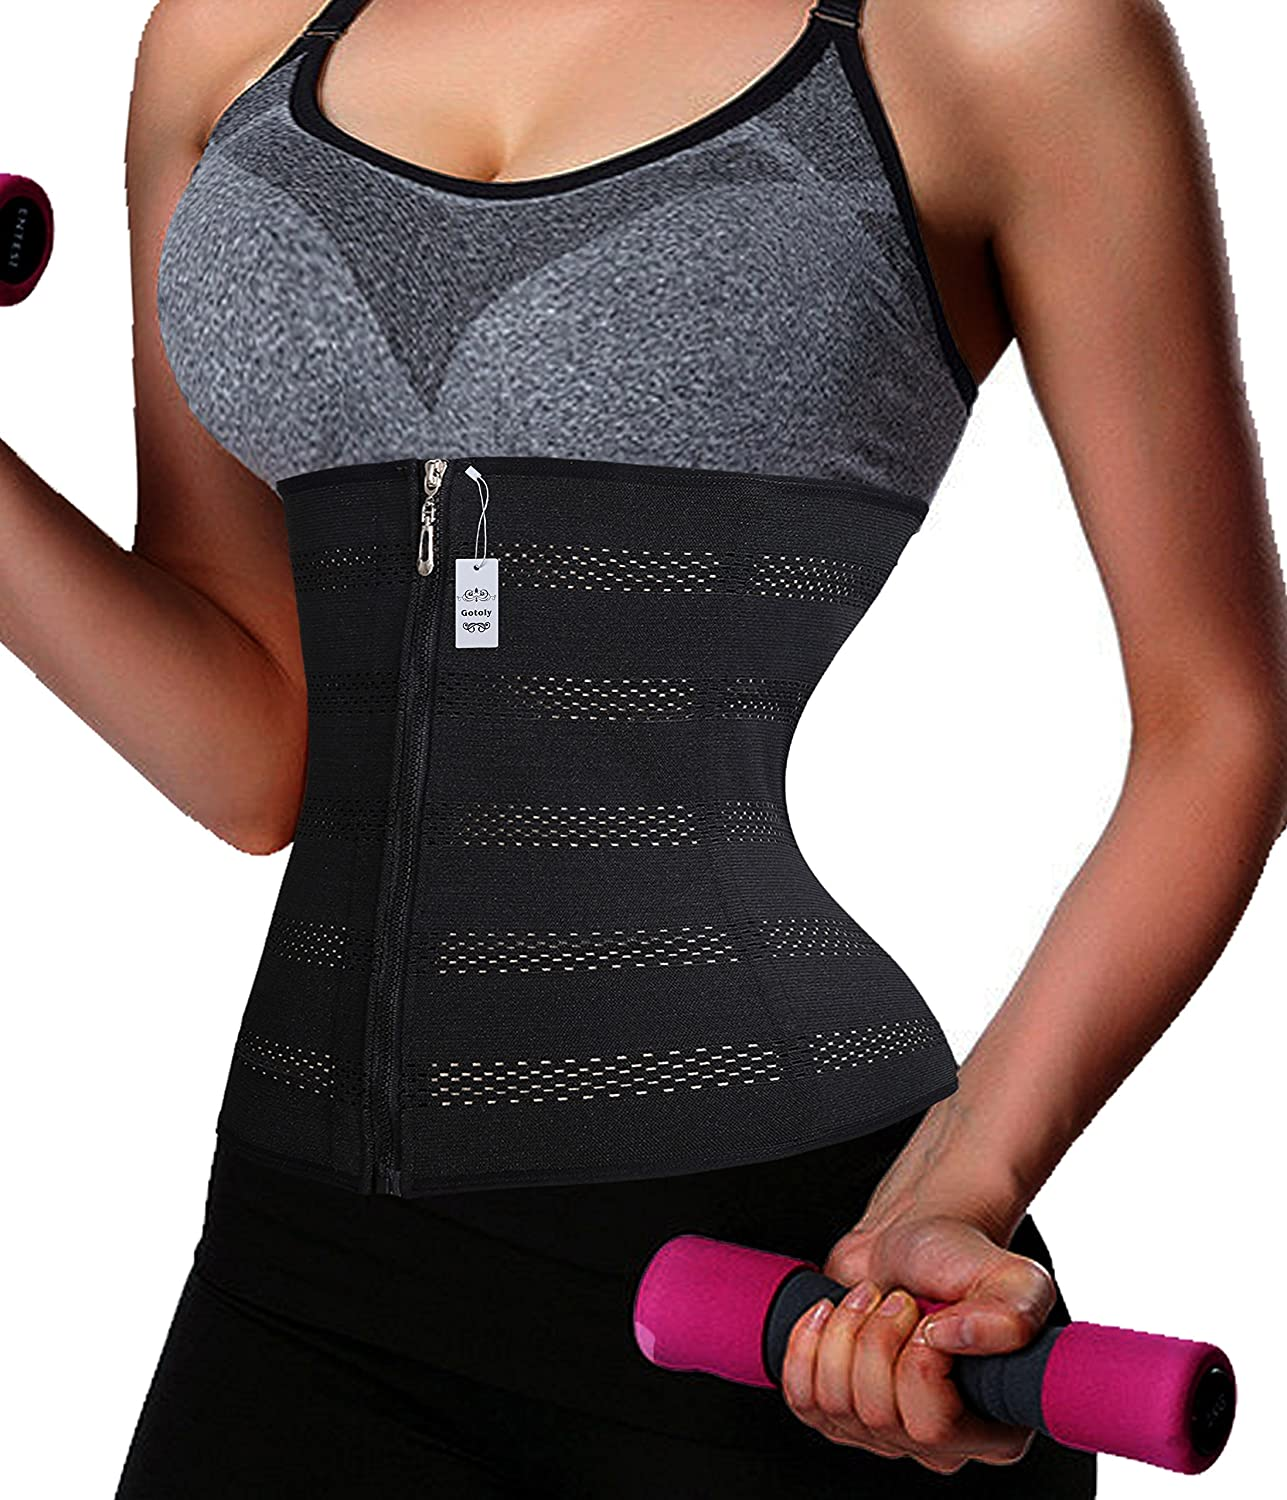 Plus Size Zipper With Hook Waist Trainer Fitness Body Shaper For Hourglass